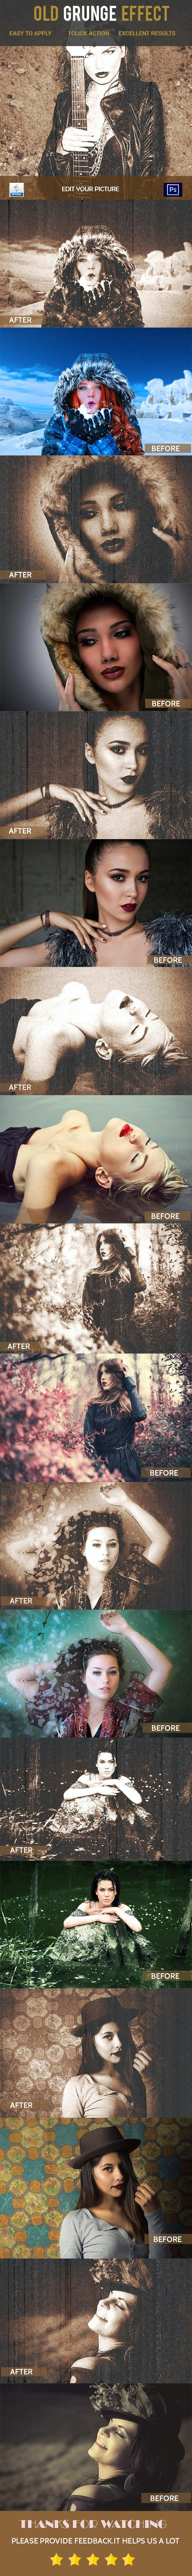 Old Grunge Photoshop Action - Photo Effects Actions